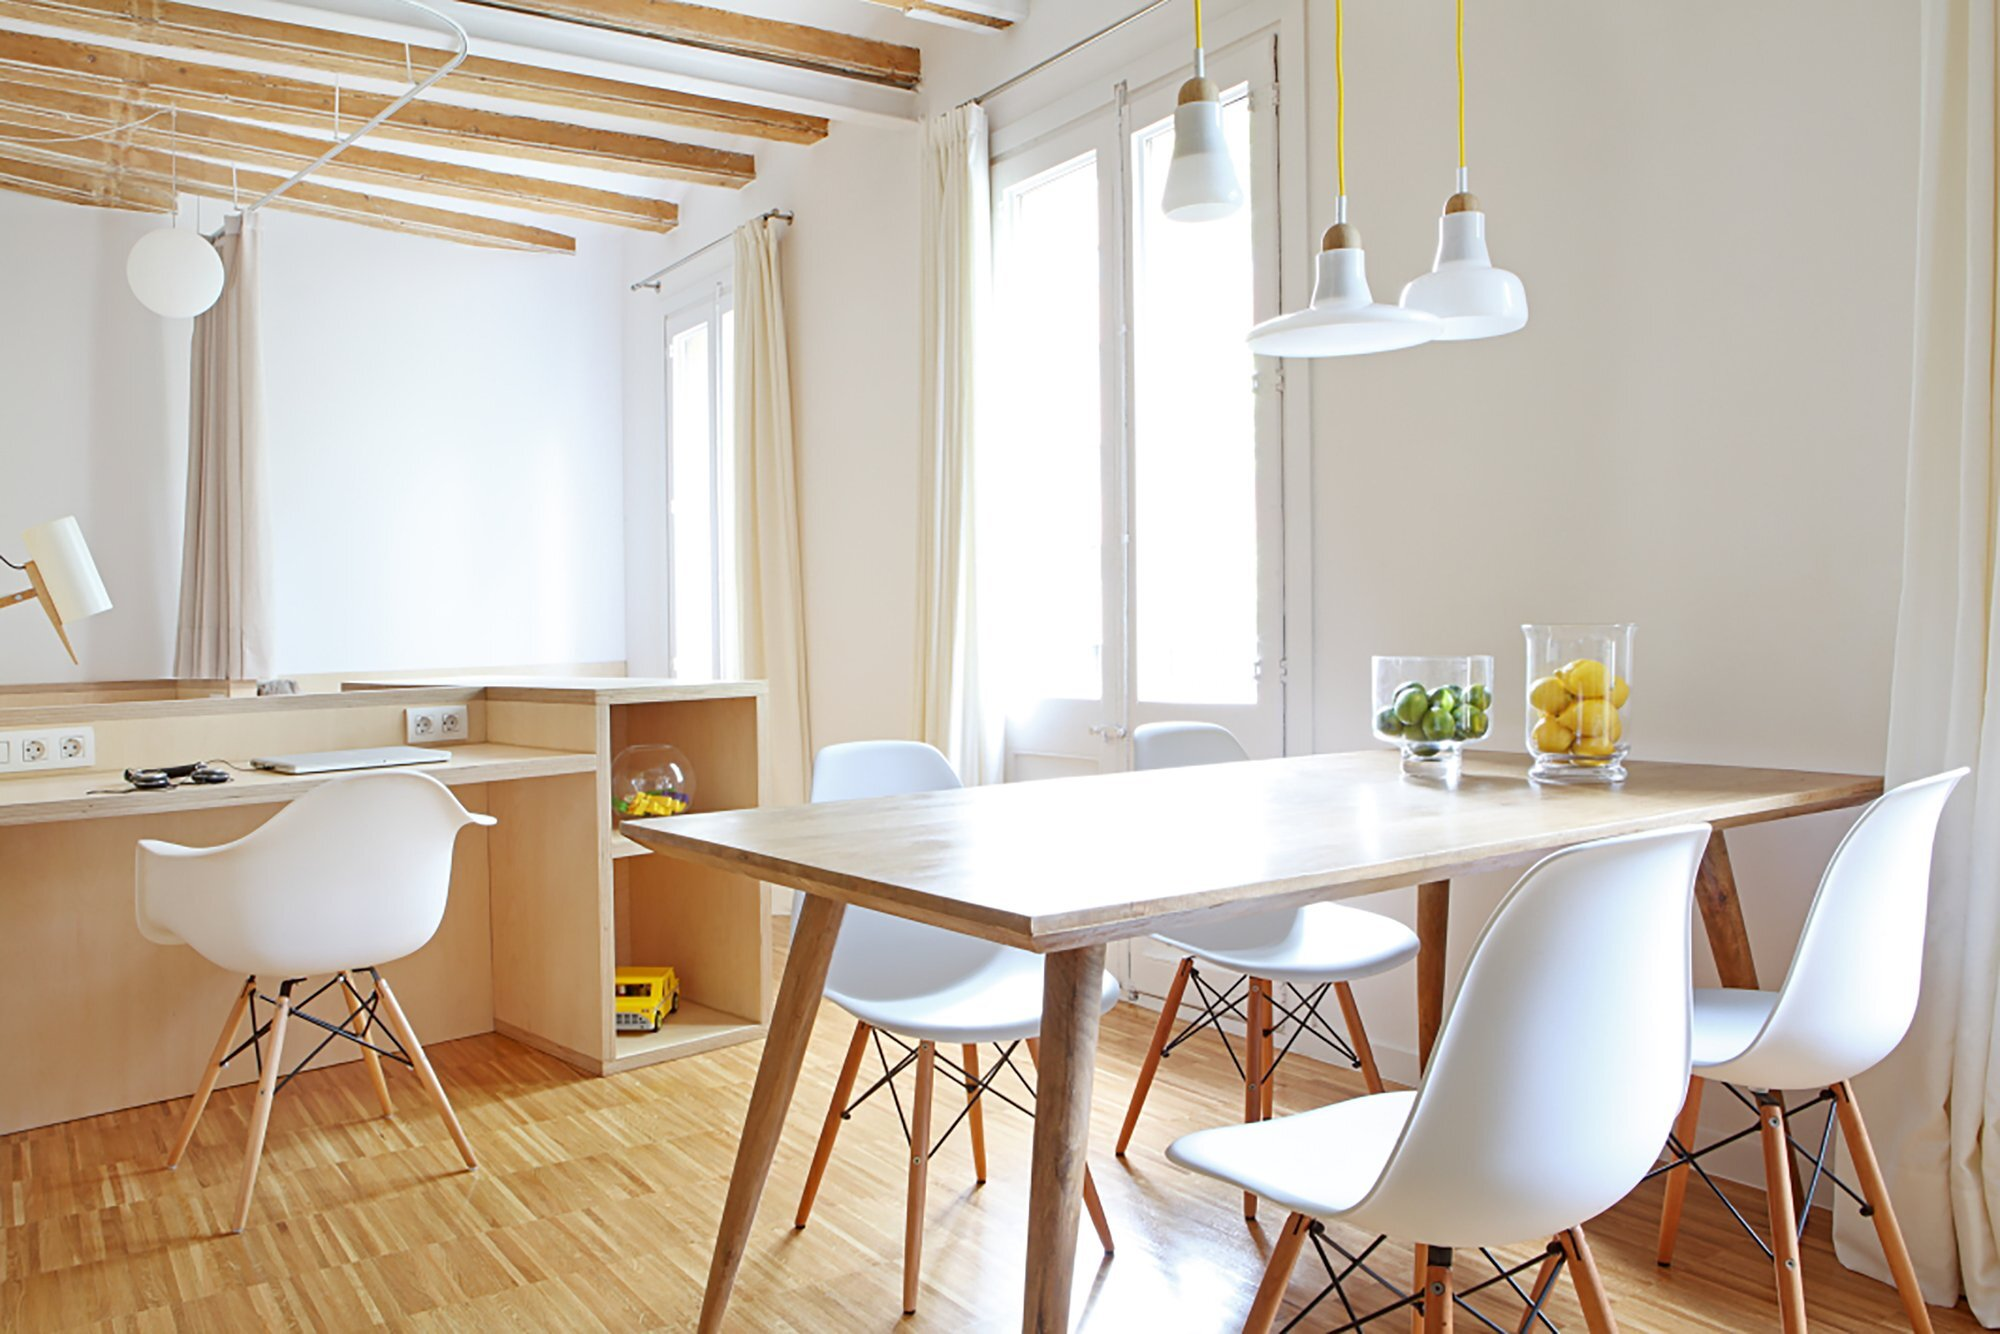 Apartment Pujades11 - Small Apartment - Miel Arquitectos + Studio P10 - Spain - Dining Room and Study - Humble Homes